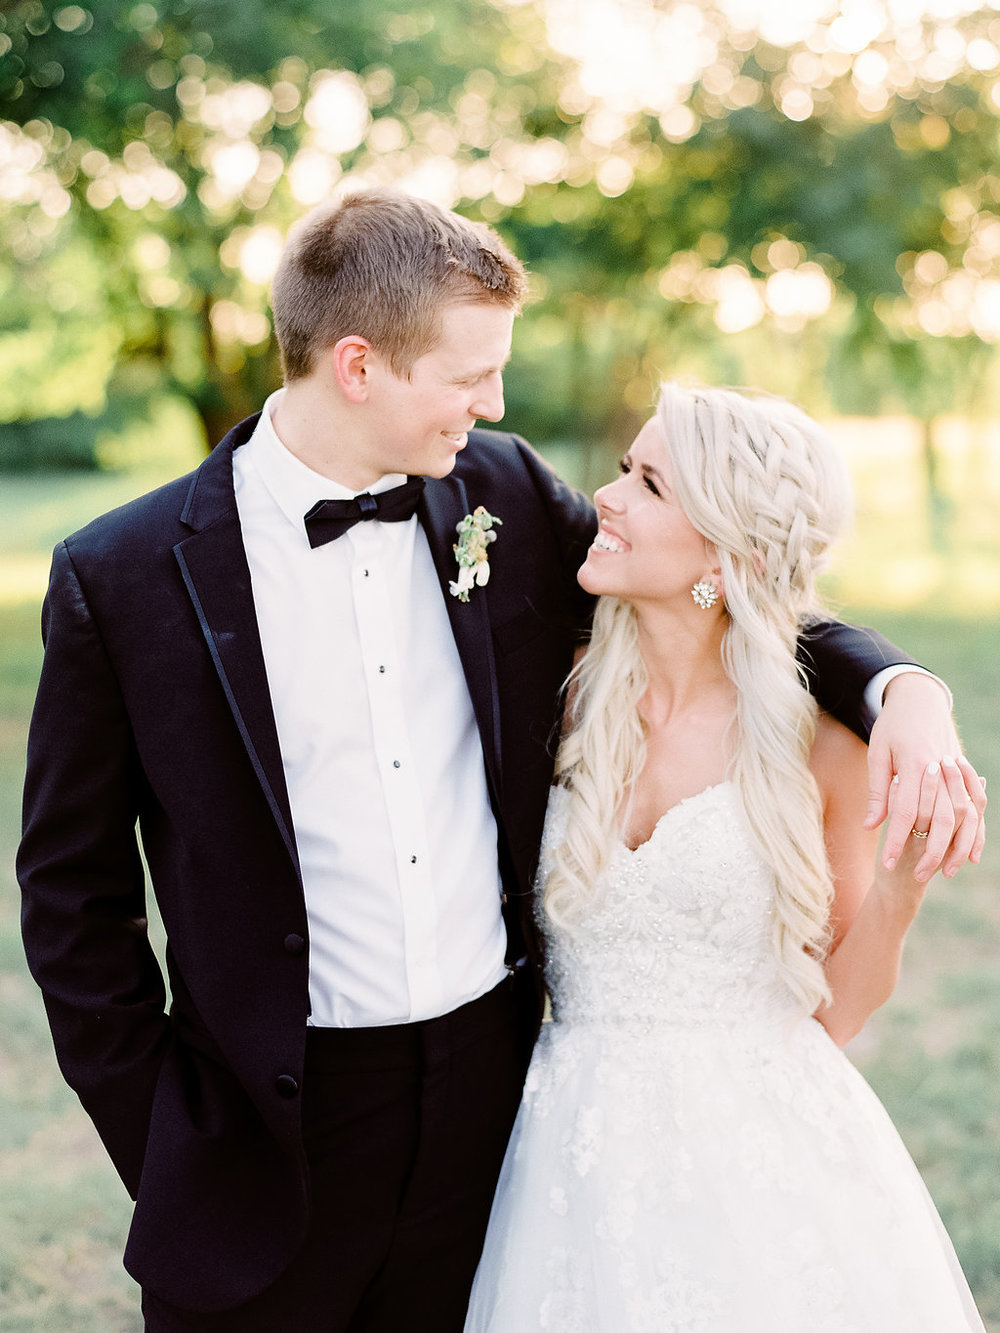 Best-Austin-Denver-California-Wedding-Photographer-Nest-Ruth-Farms-39.jpg